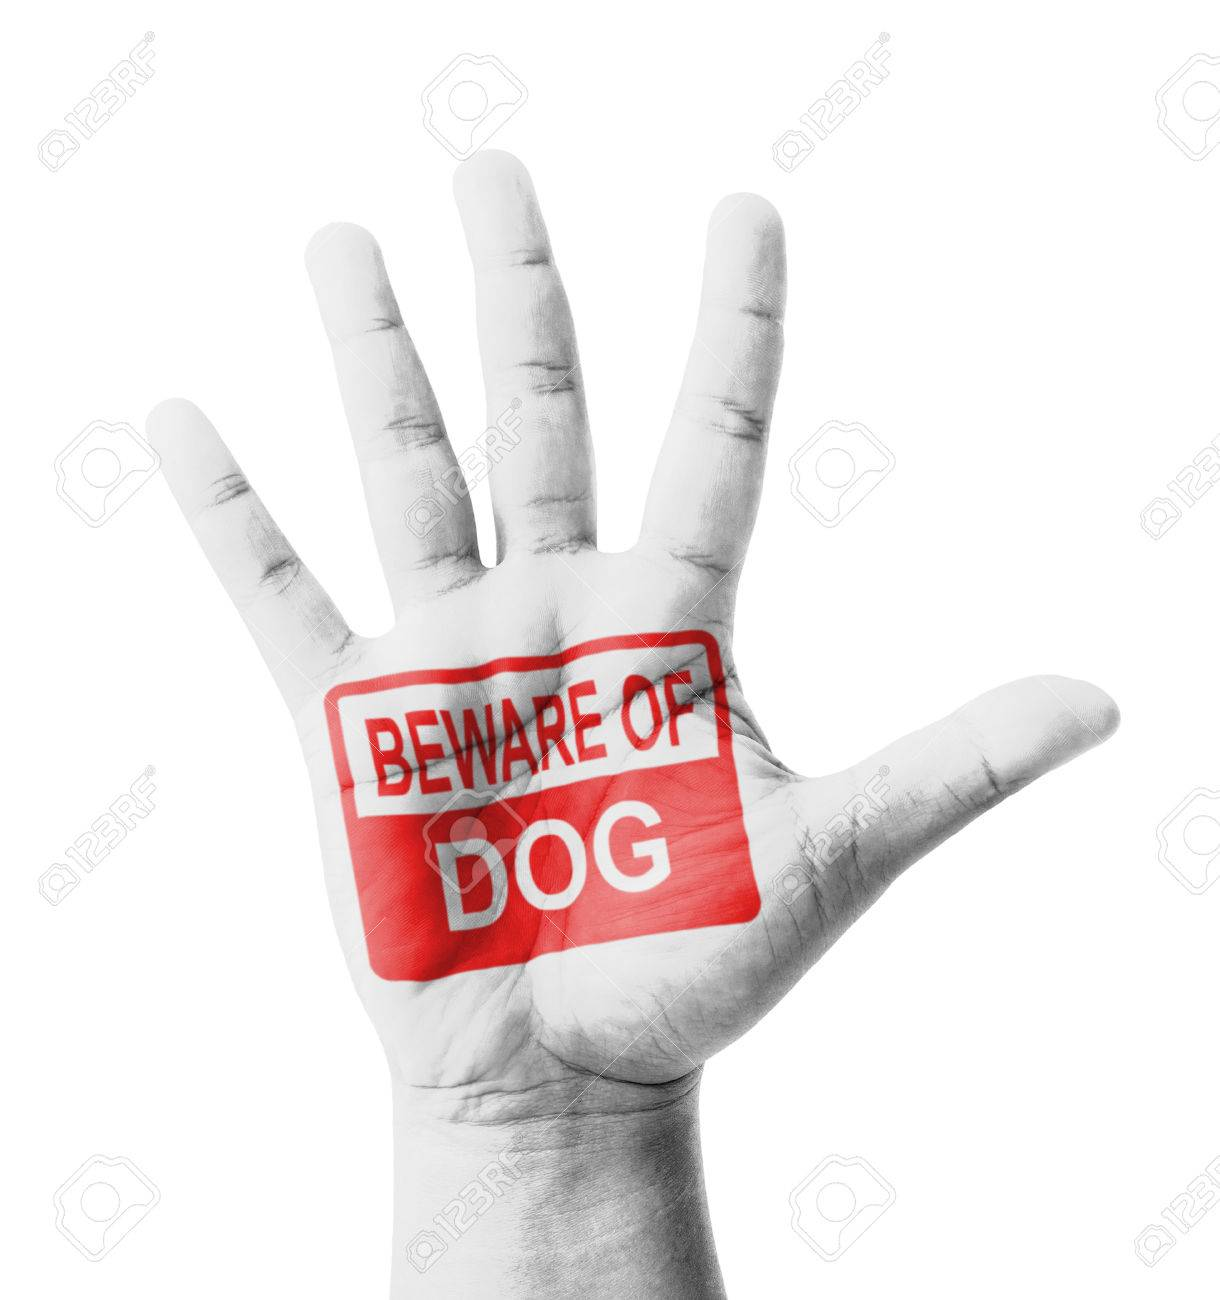 Open hand raised, Beware of Dog sign painted, multi purpose concept - isolated on white background Stock Photo - 26506052